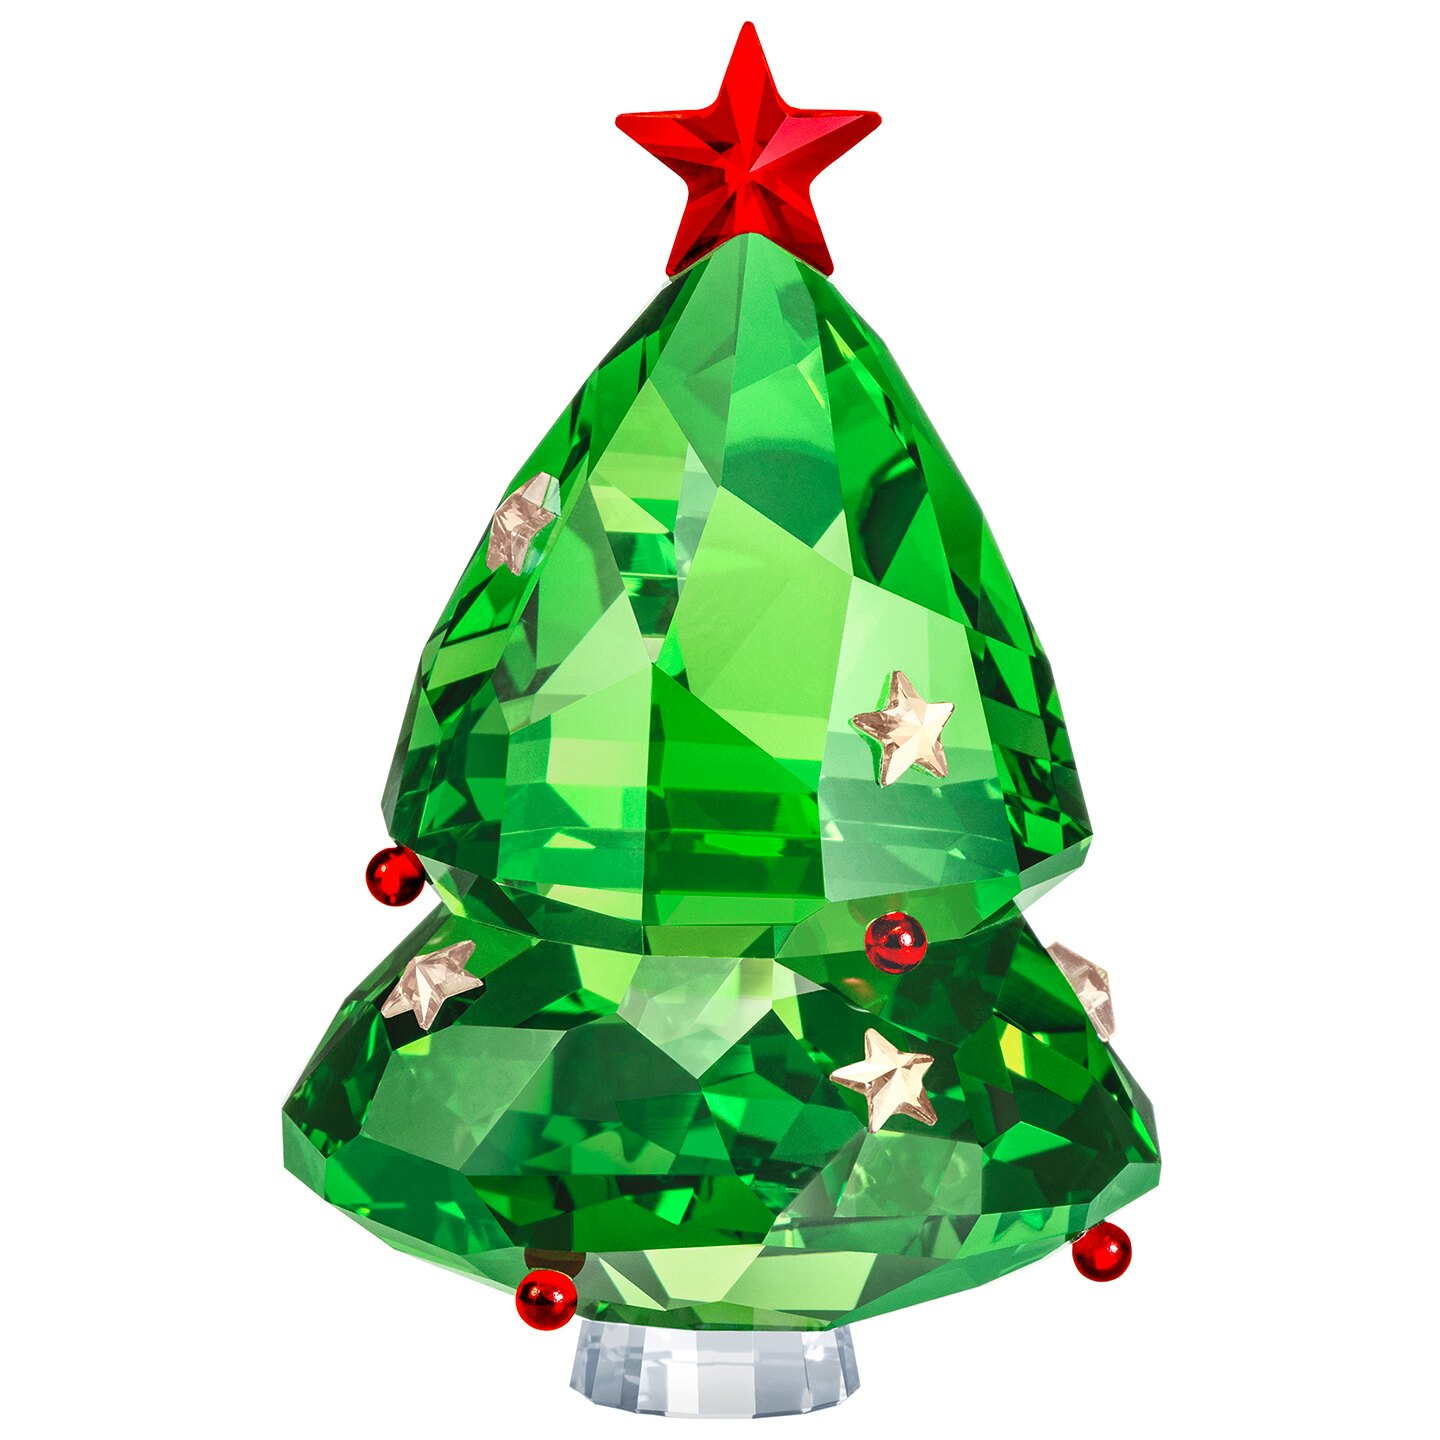 Swarovski Christmas Tree Green Ornament